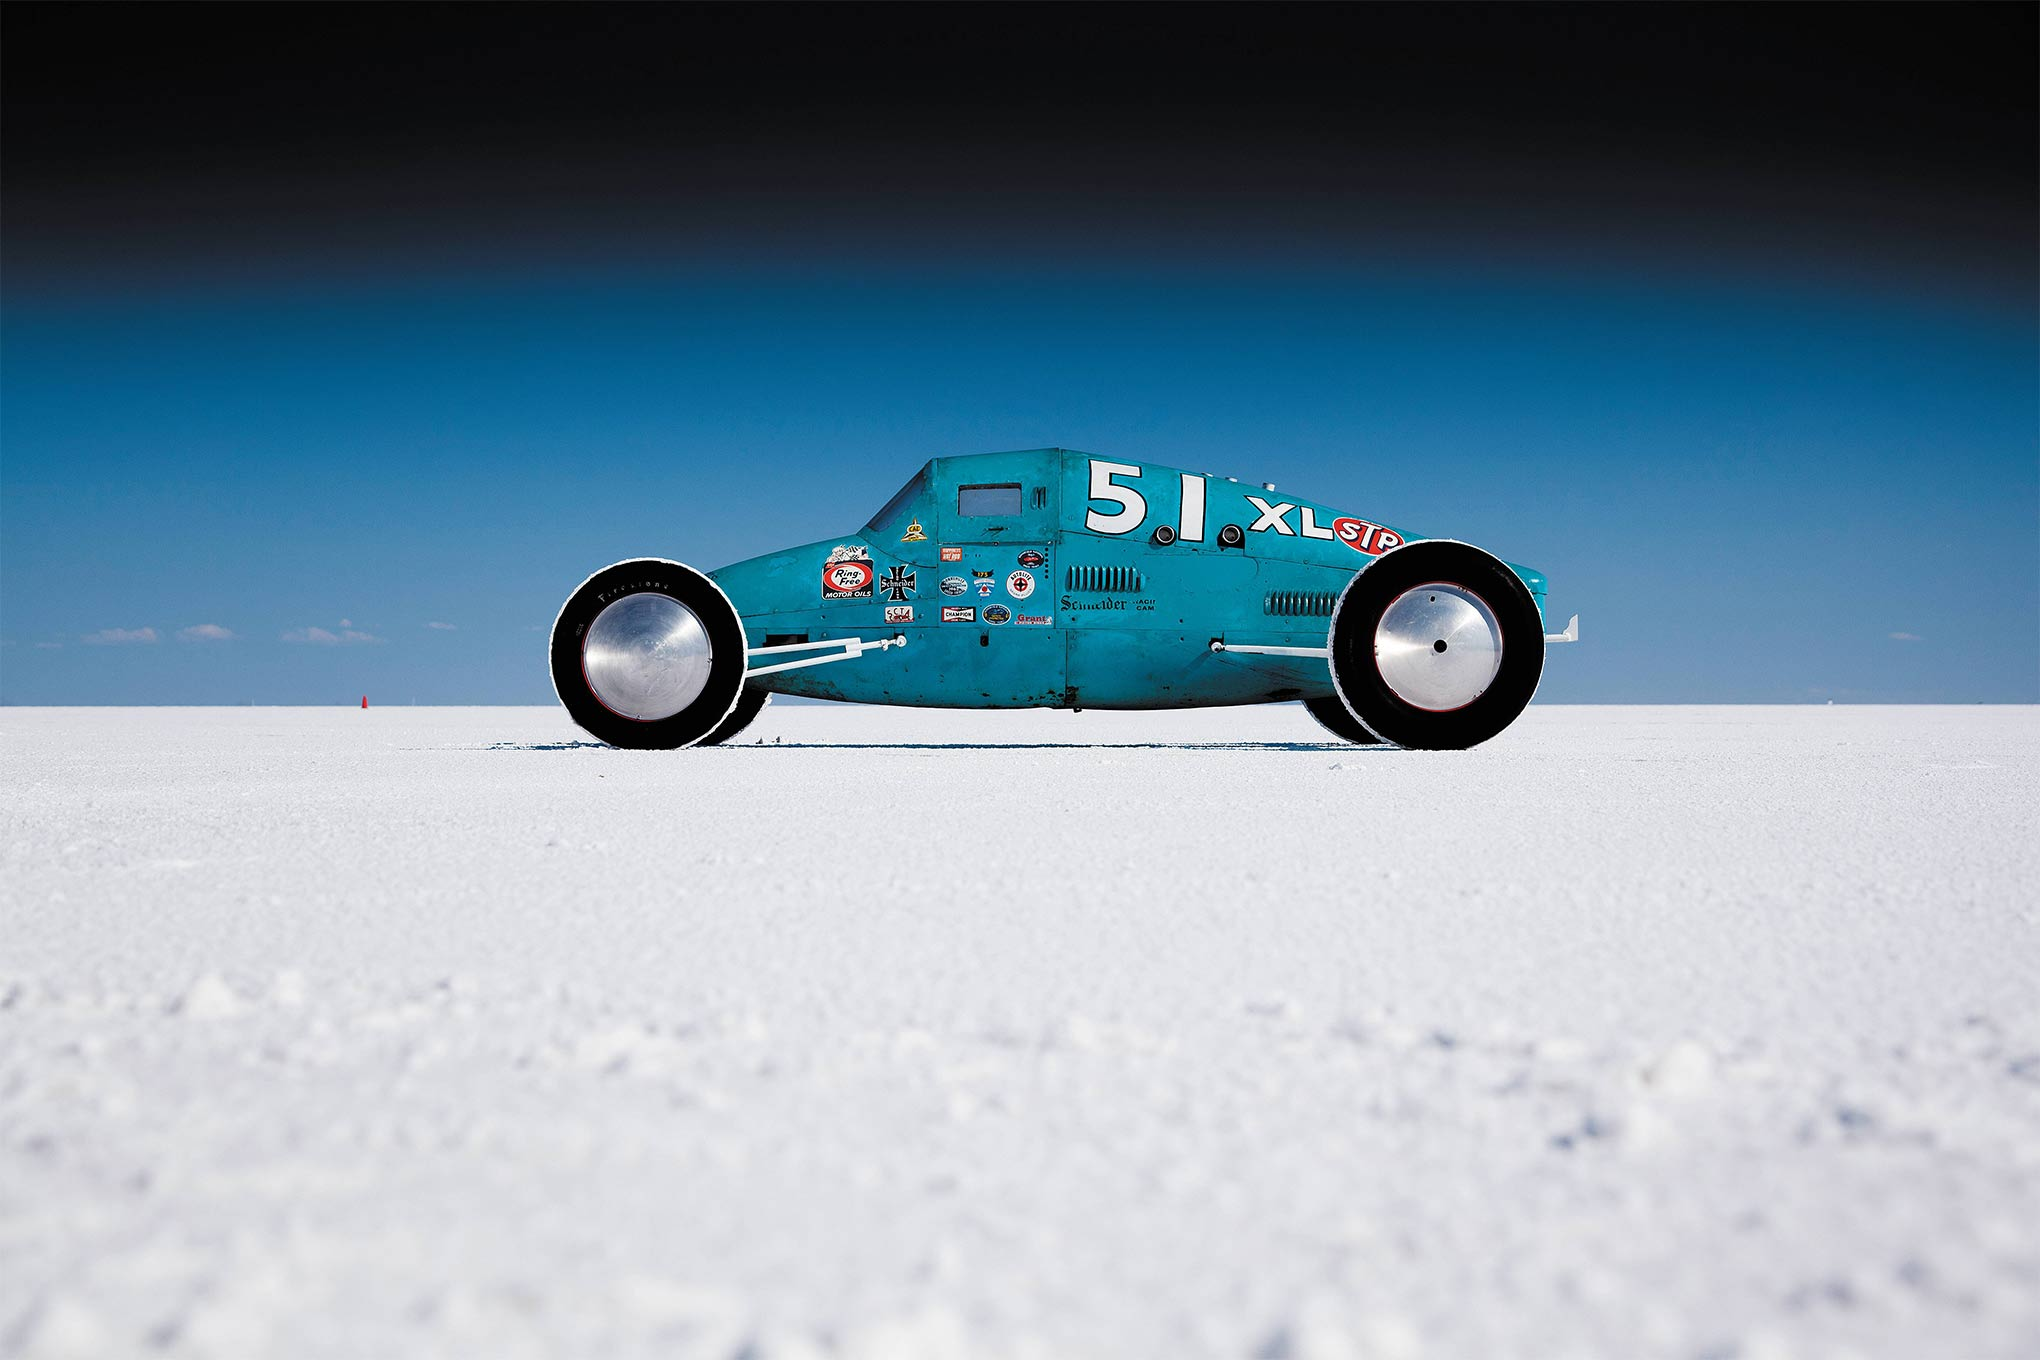 All lakes cars are unique but few are as distinctive as Lobello's Ladybug. Its high canopy and short wheelbase give it toy-like properties. Though the car never set a record, it set the stage for Lobello's following record-setting car.